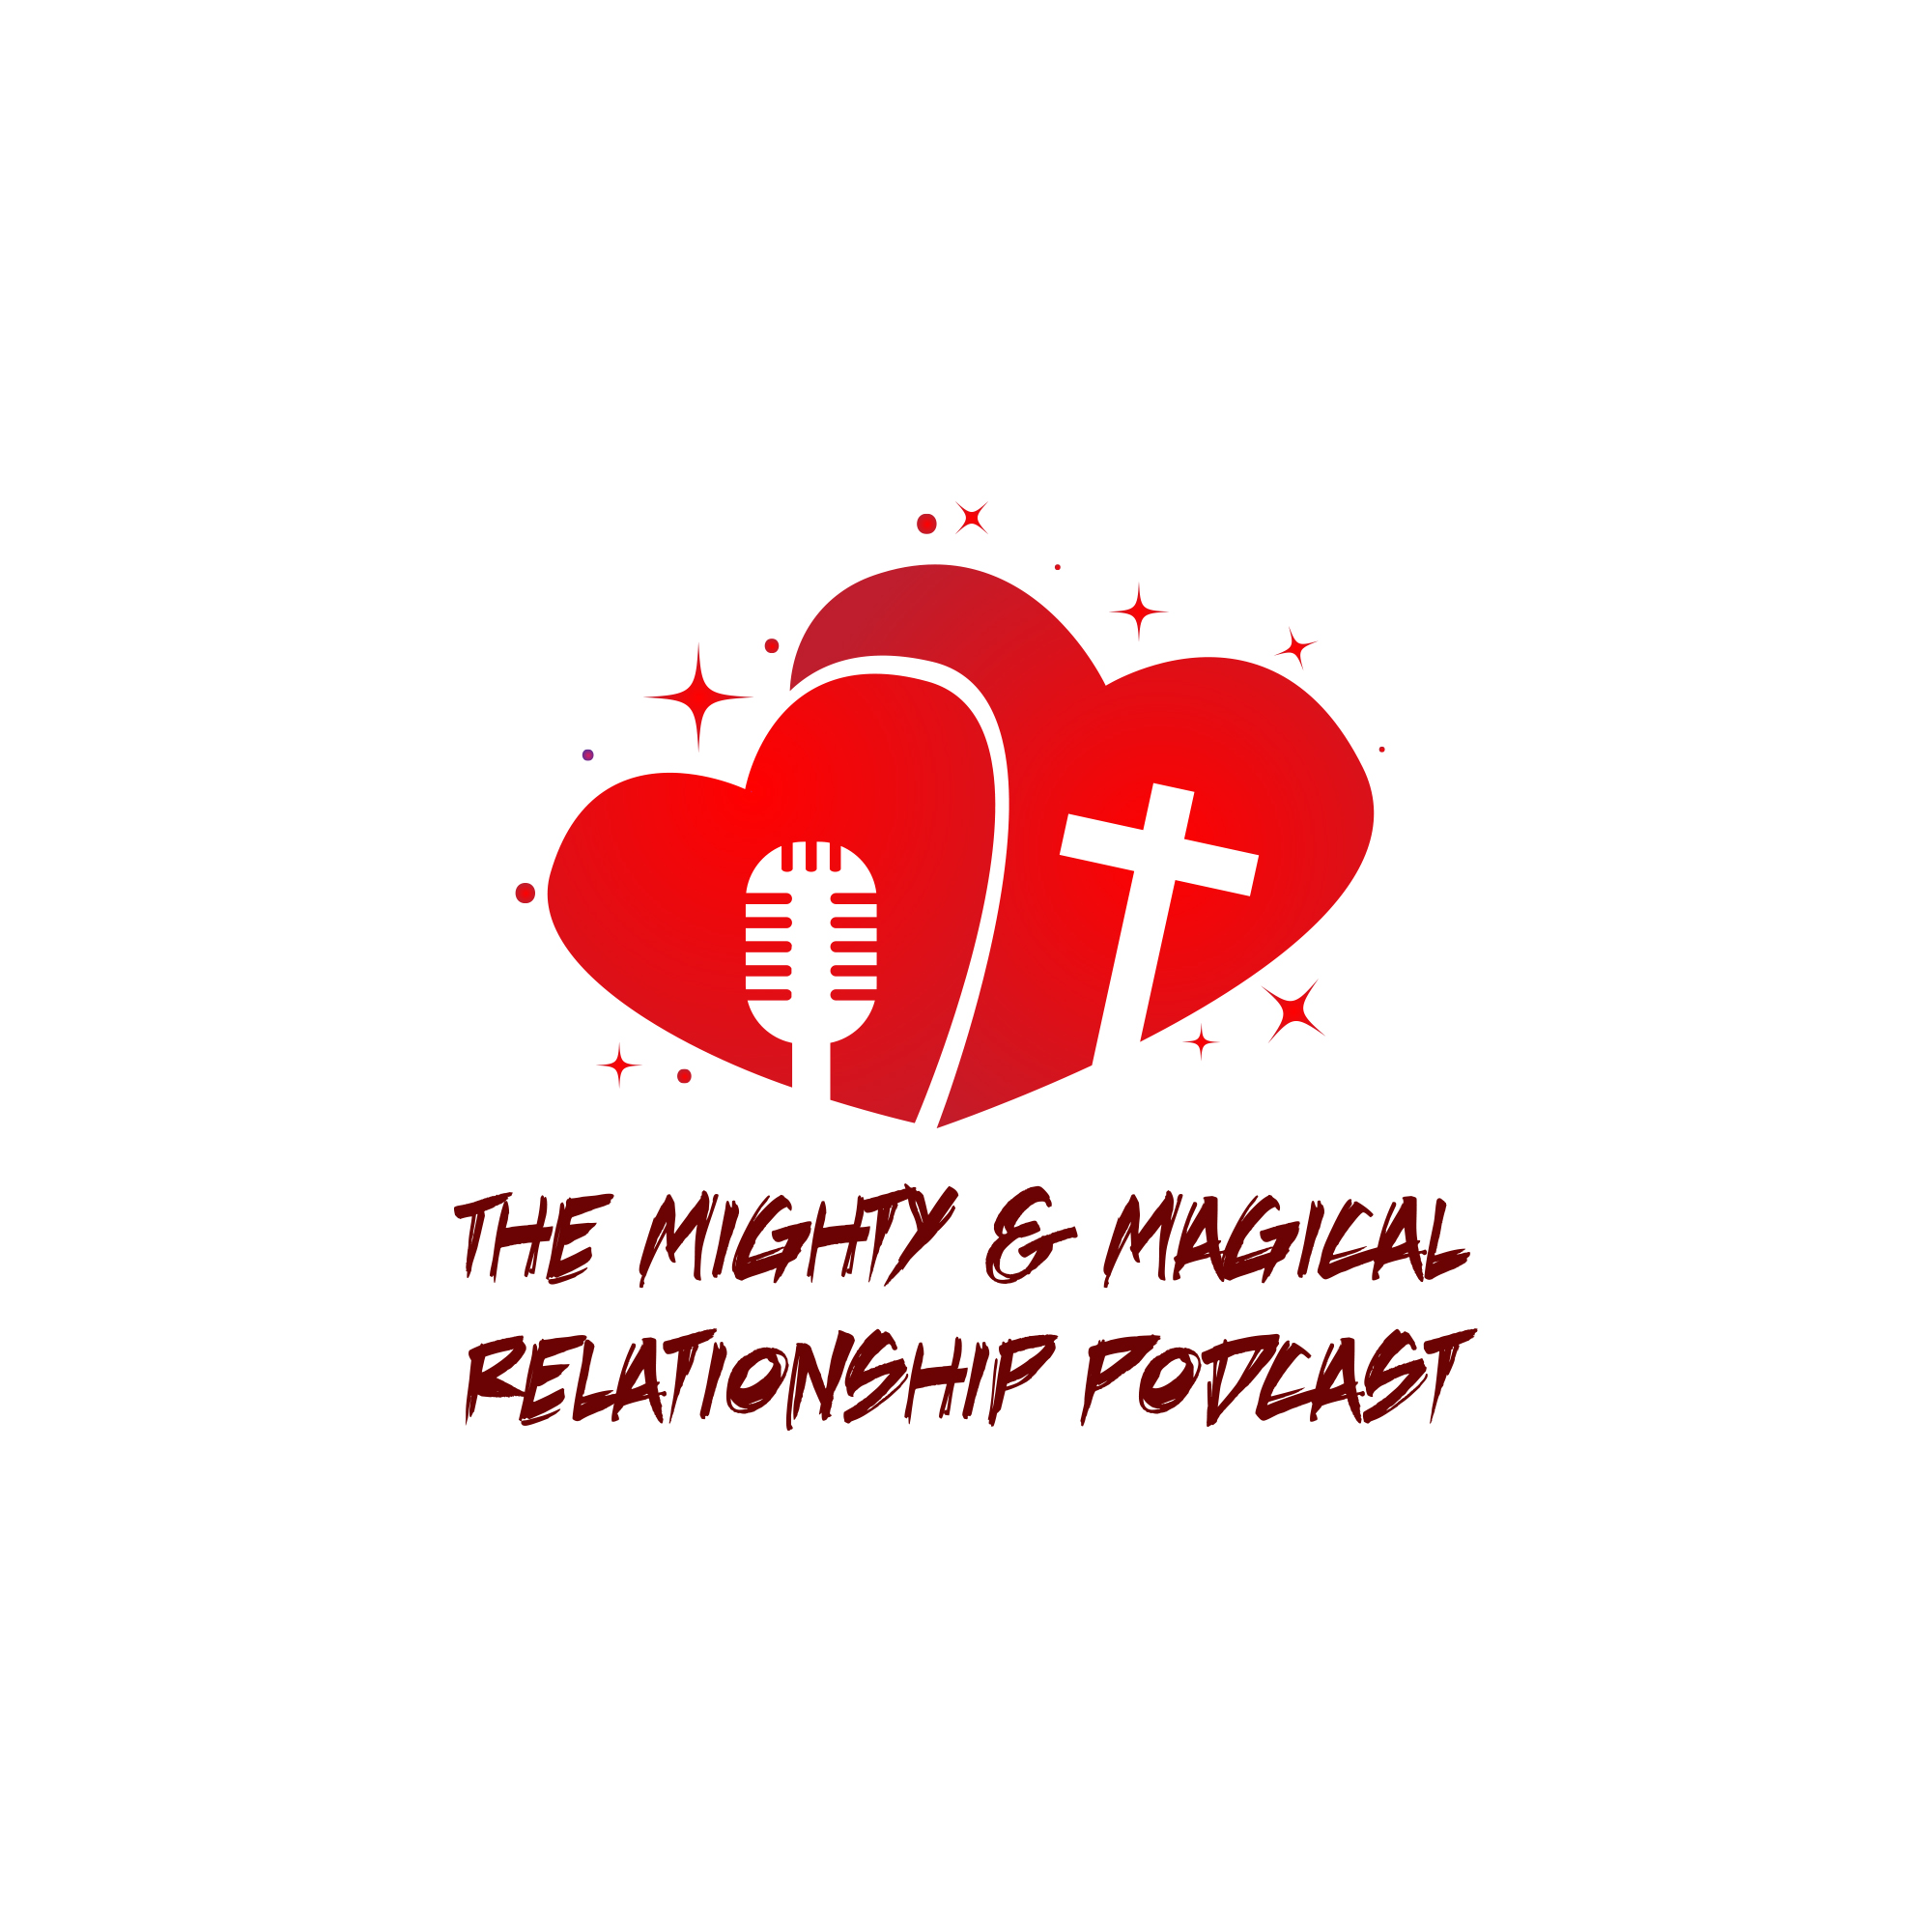 Mighty & Magical Relationship Podcast - Mixed Signals